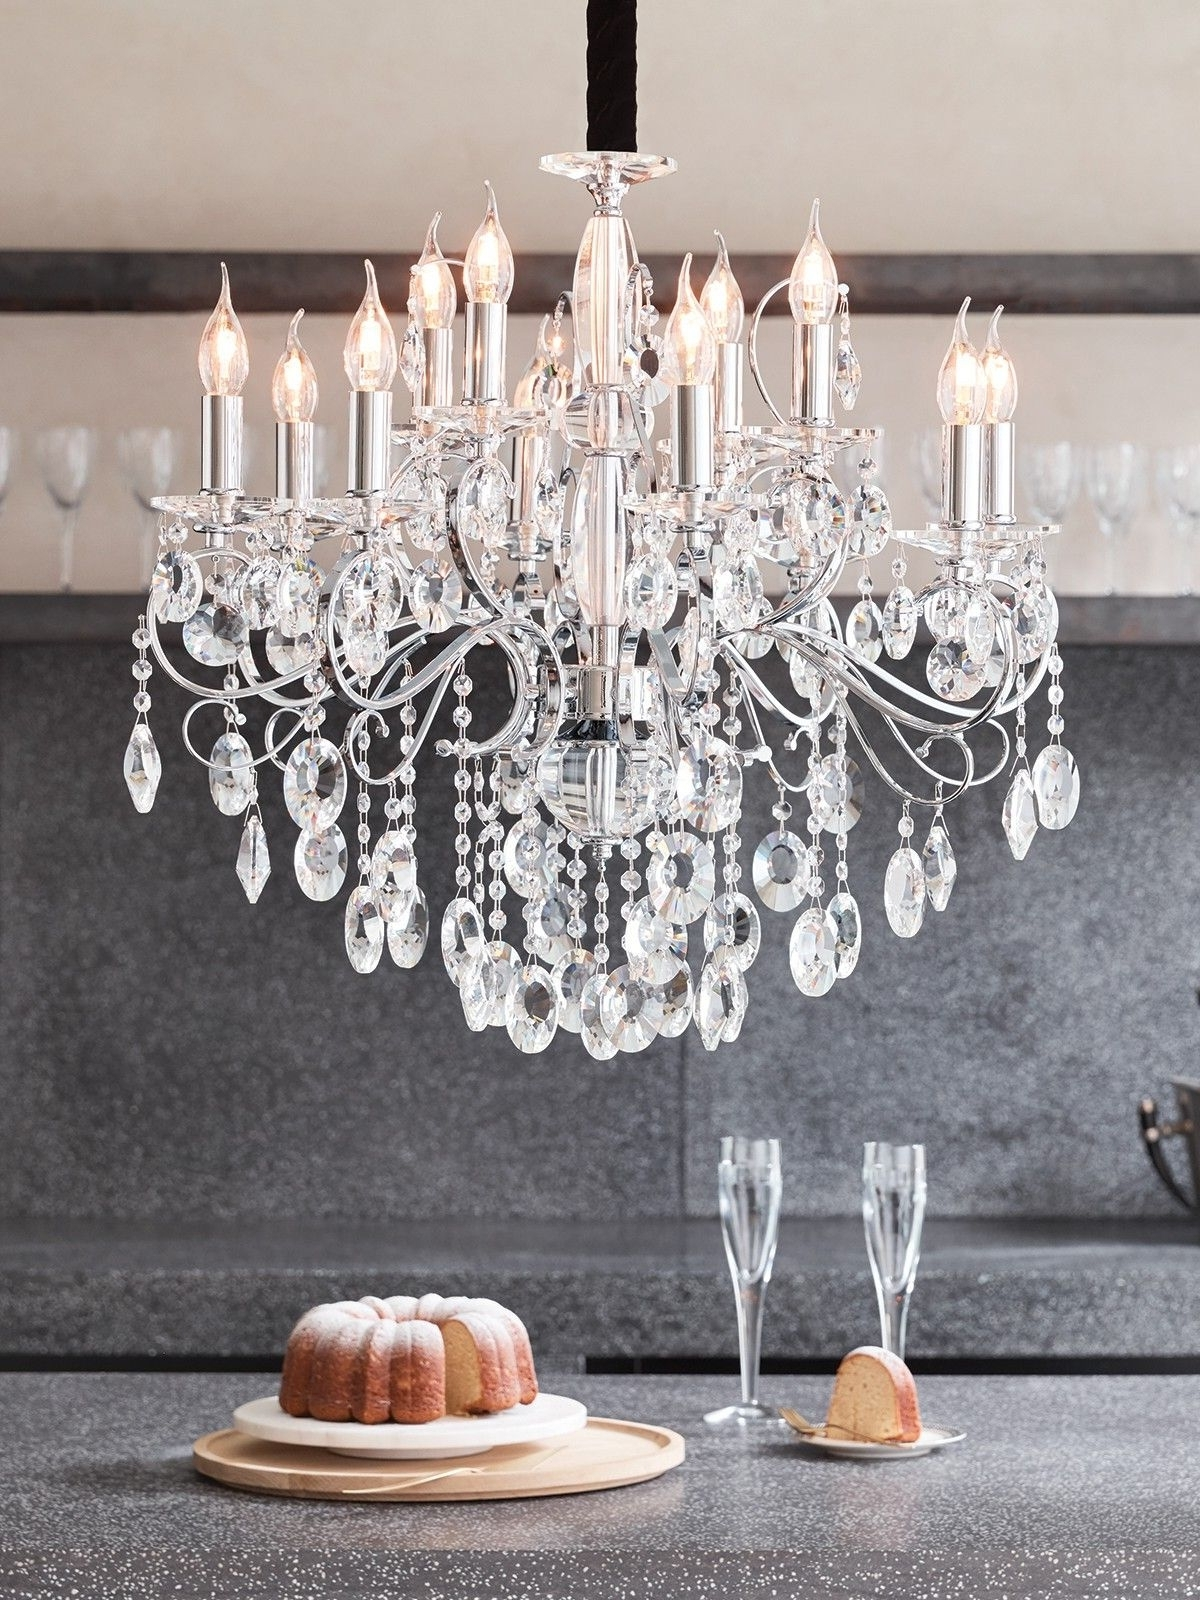 Madeleine 12 Light Egyptian Crystal Chandelier In Chrome (View 2 of 15)